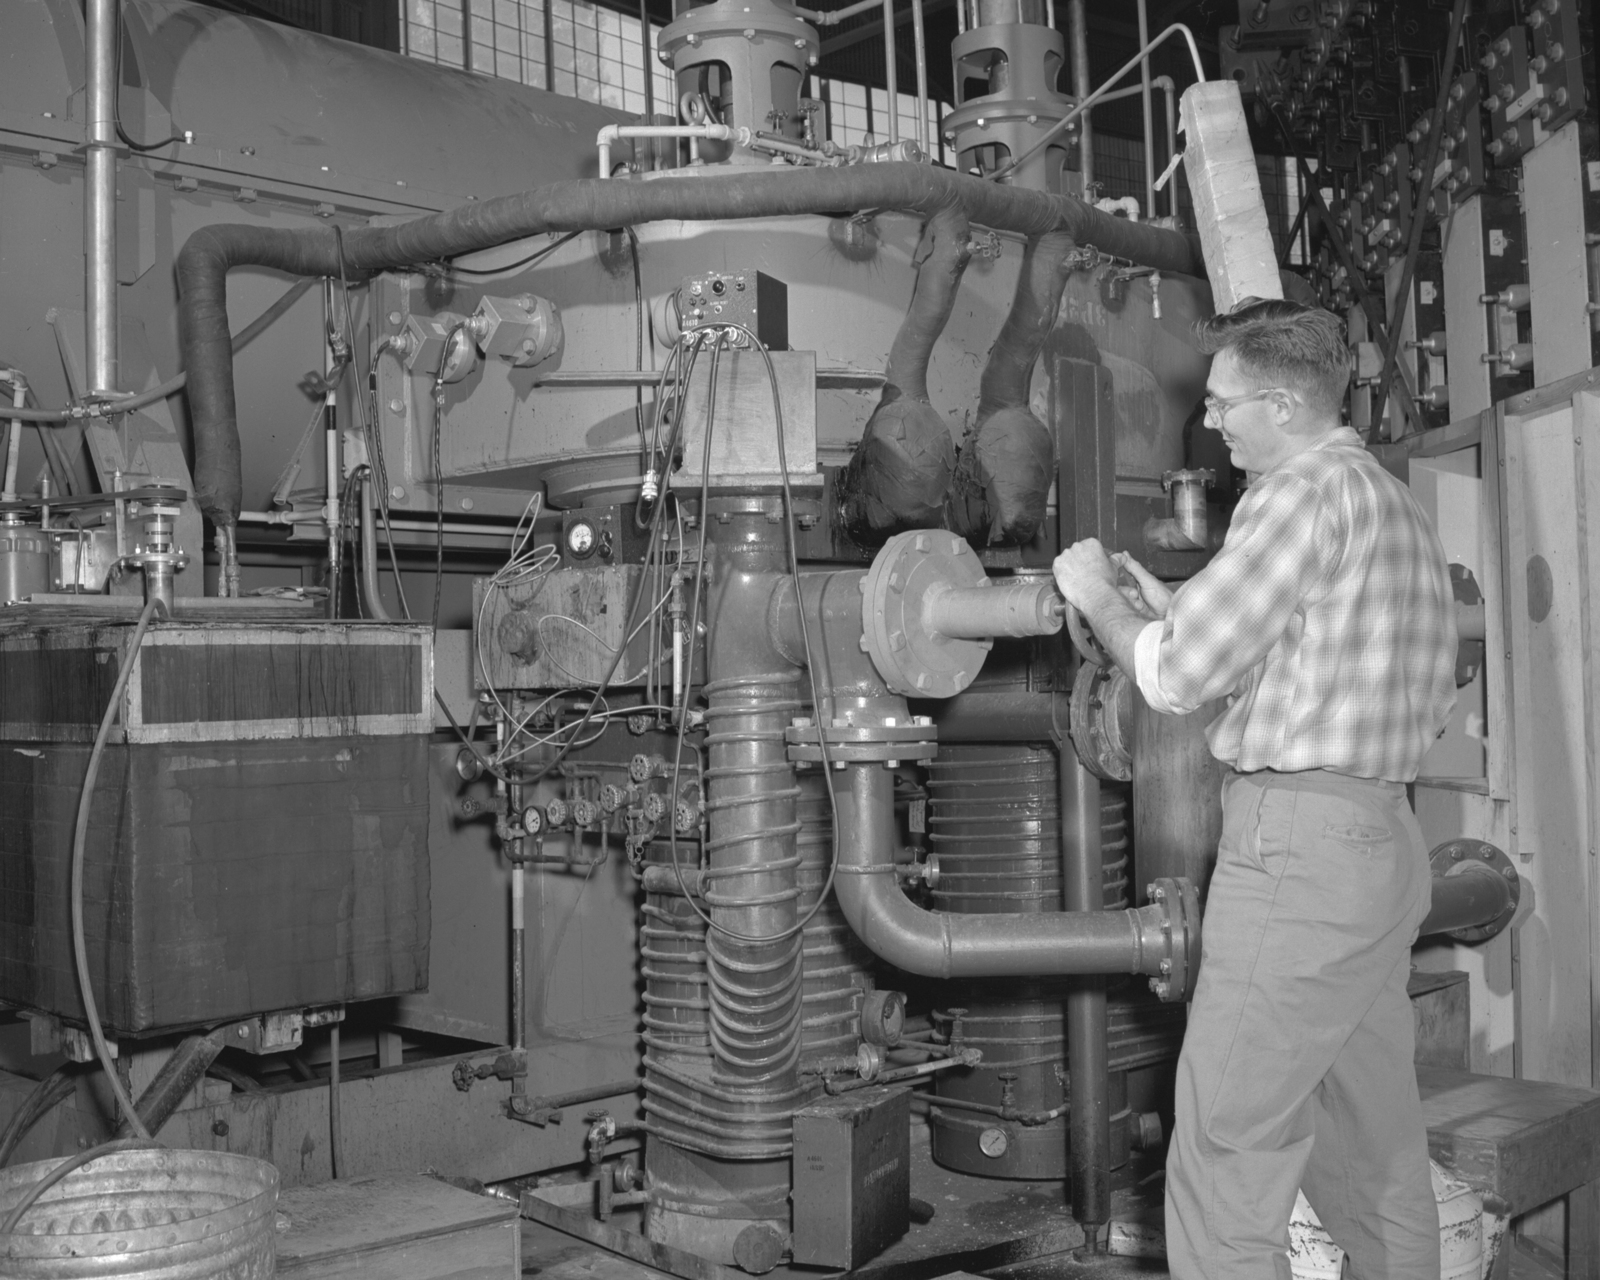 Vacuum system, Ross Nemetz. Photograph taken December 17, 1956. Bevatron- 1214